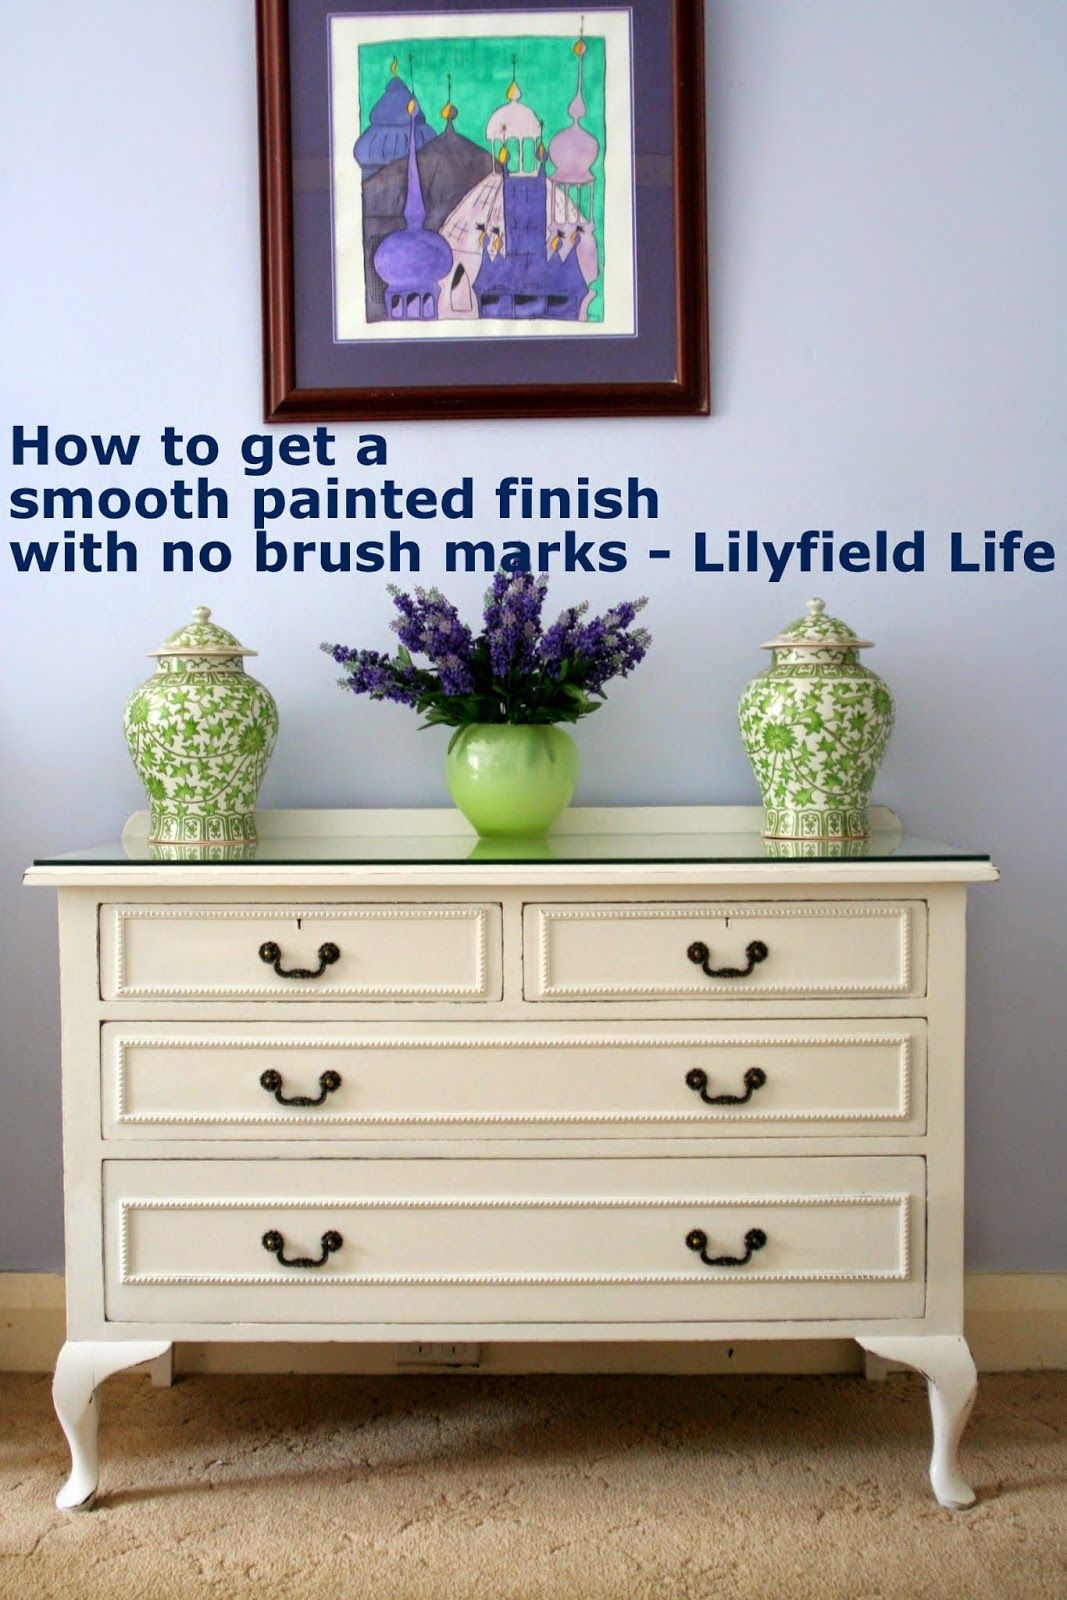 Smooth Finish for Painted Furniture with no brush marks. Even using #asap #paint:  My Hints - Lilyfield Life